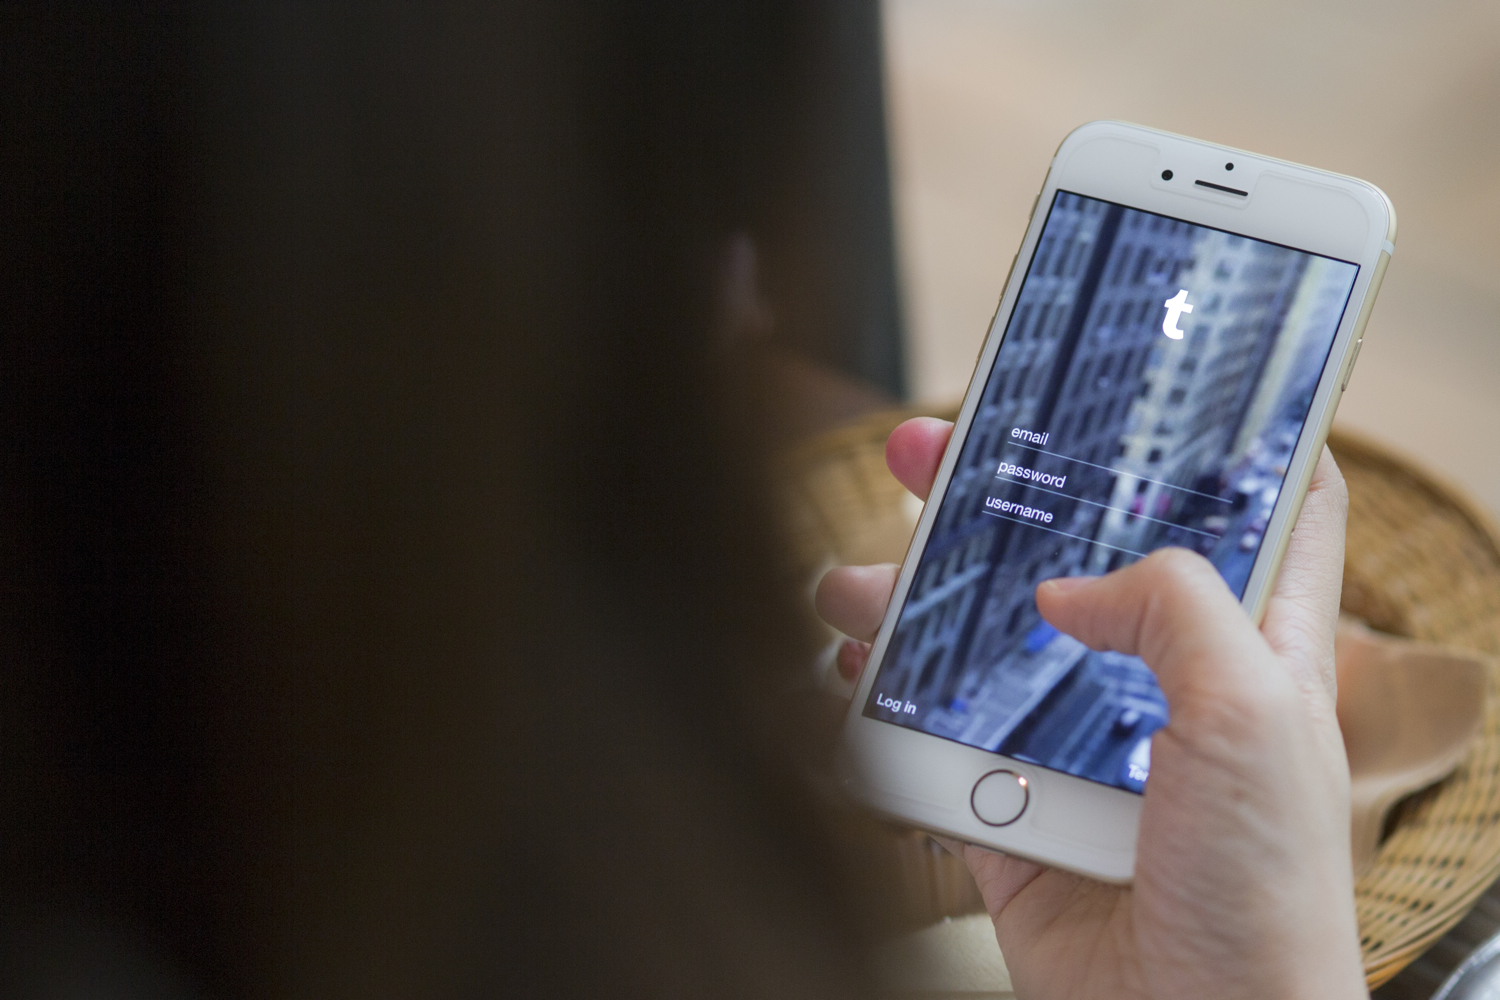 Tumblr's New Imessage App Lets You Create And Share Your